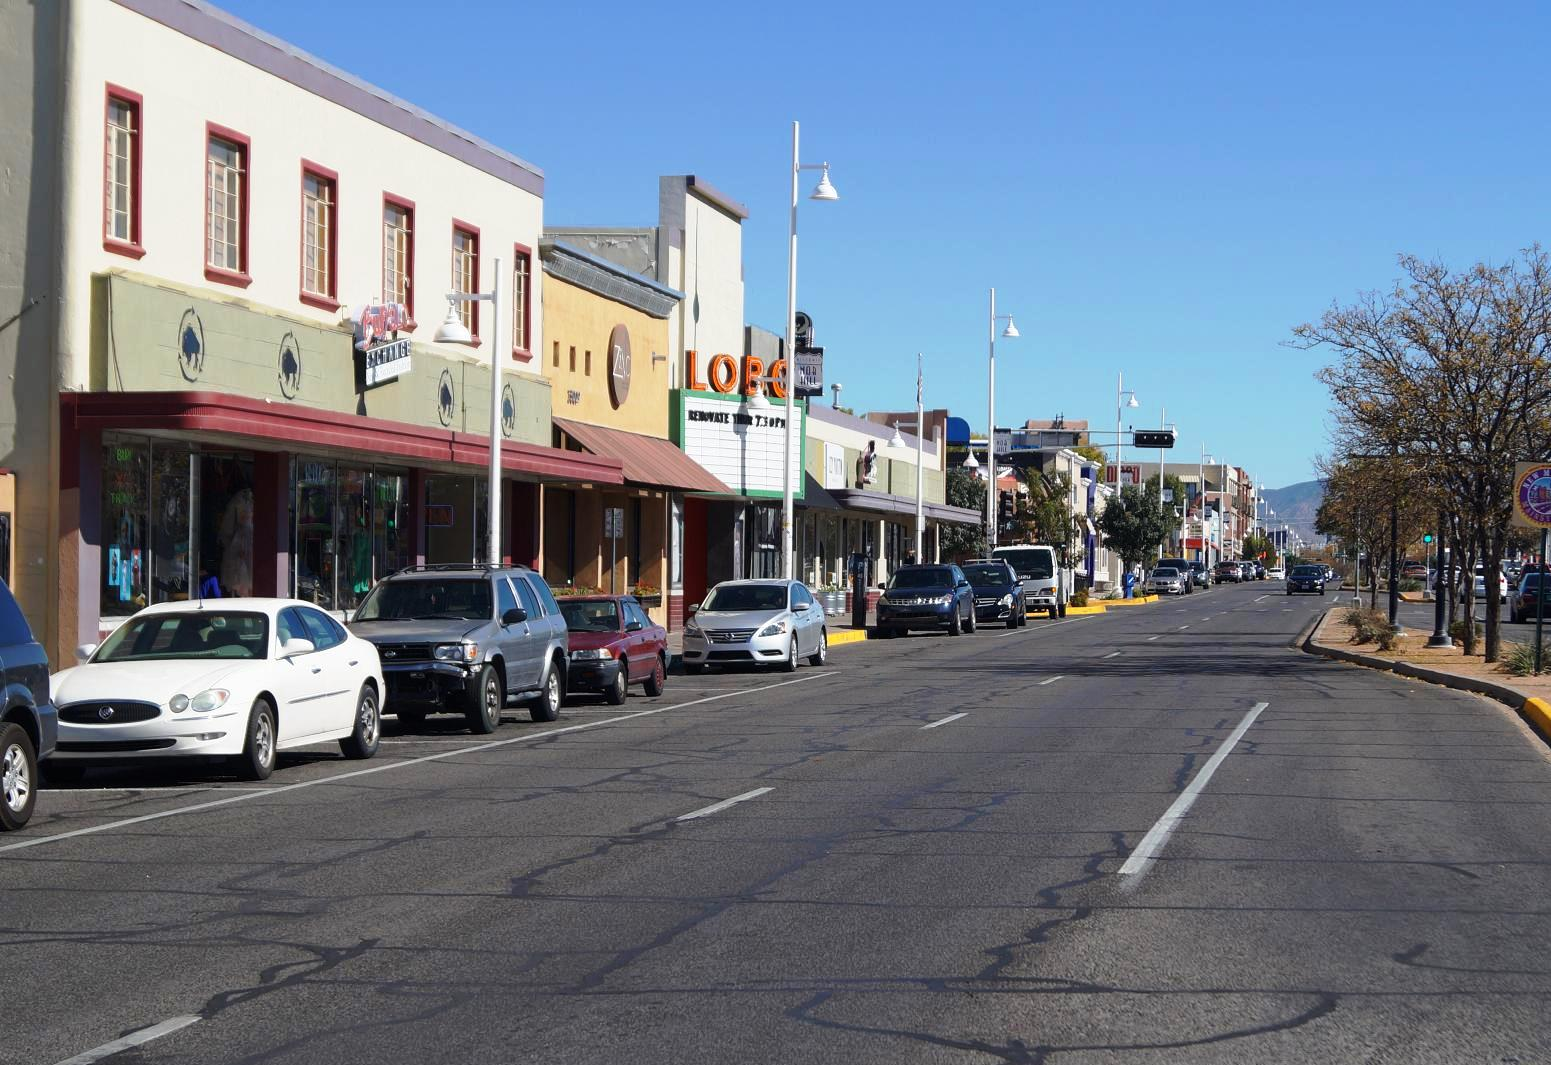 A photo of Central Avenue in the Nob Hill district of Albuquerque